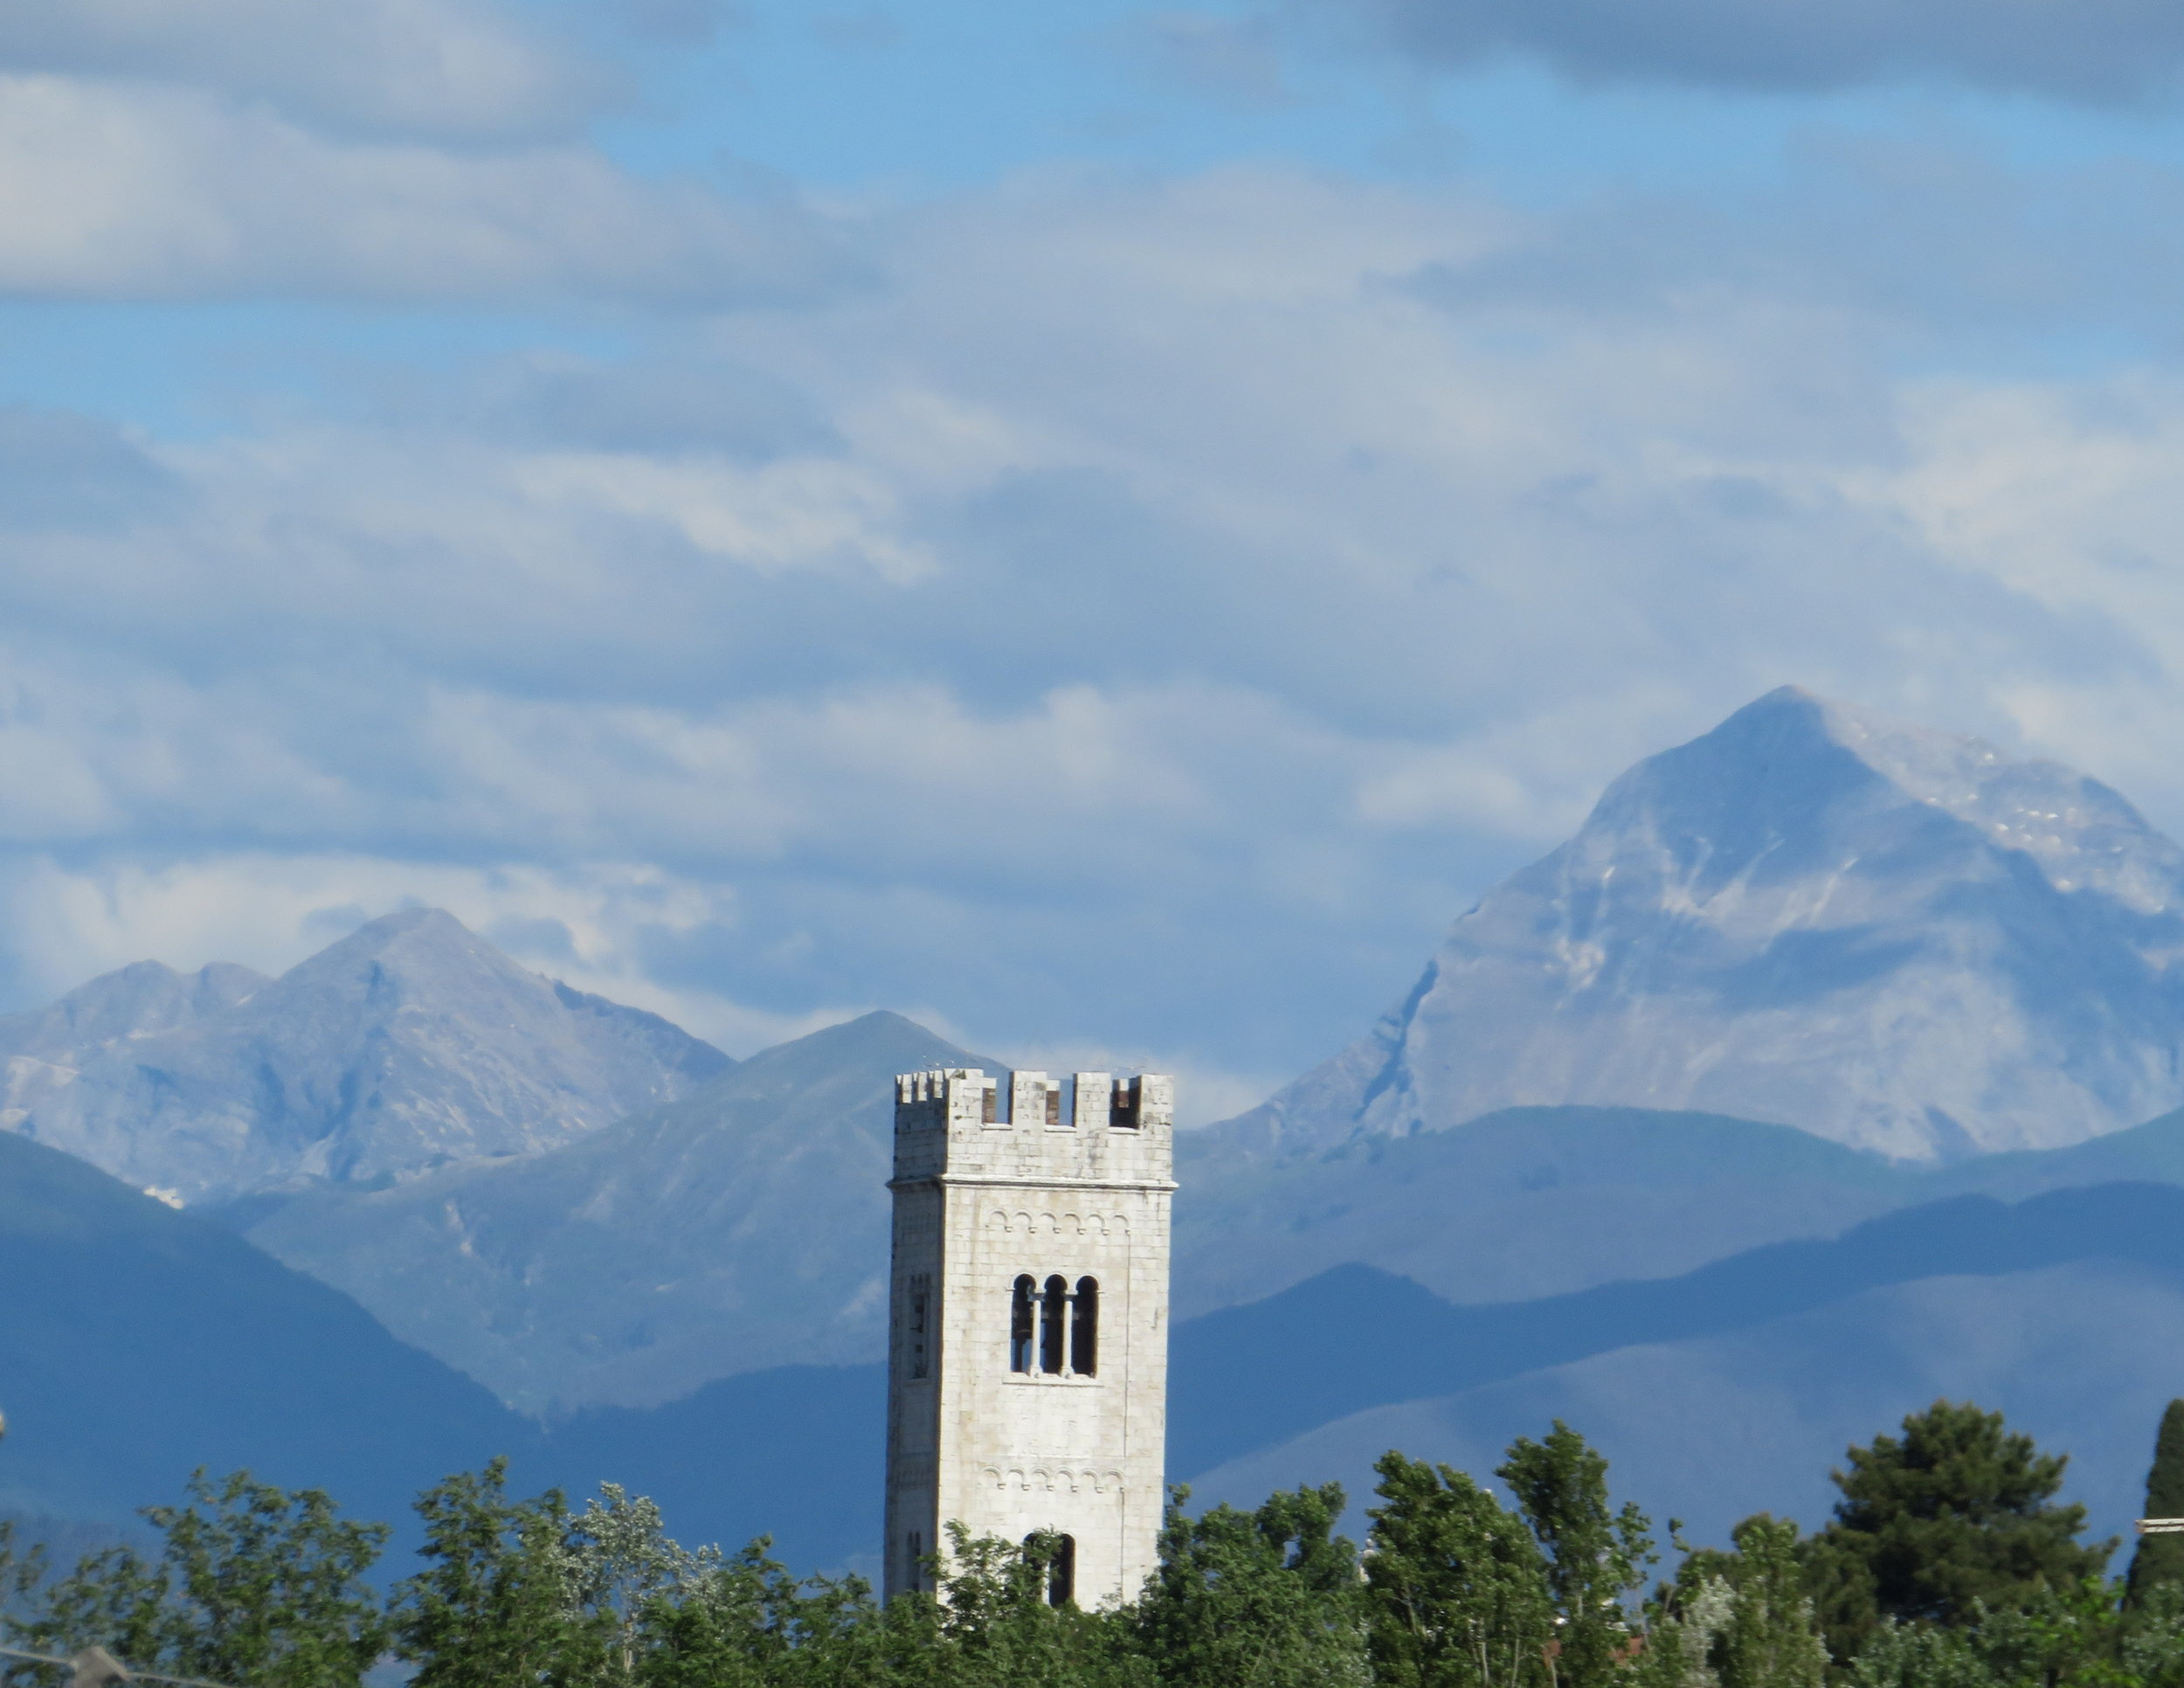 Alto-Lucca_church tower and mountains.JPG